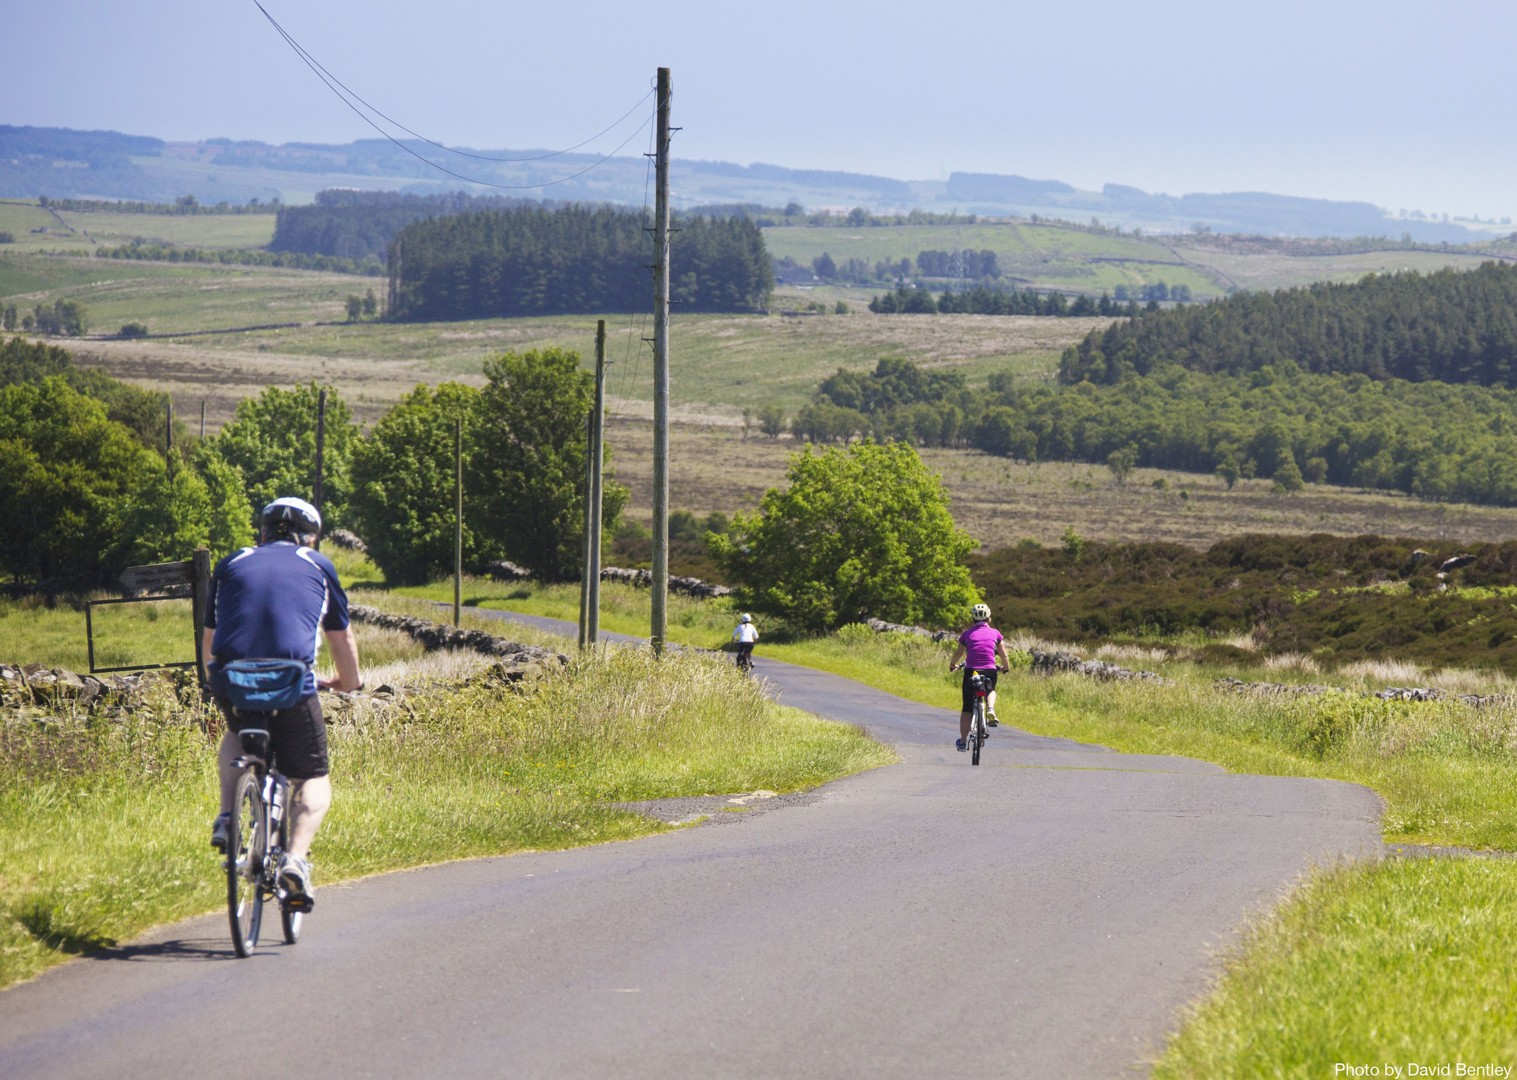 Hadrians-Cycleway-Self-Guided-Leisure-Cycling-Holiday-Northumberland.jpg - UK - Hadrian's Cycleway - 2 Days Cycling - Self-Guided Leisure Cycling Holiday - Leisure Cycling